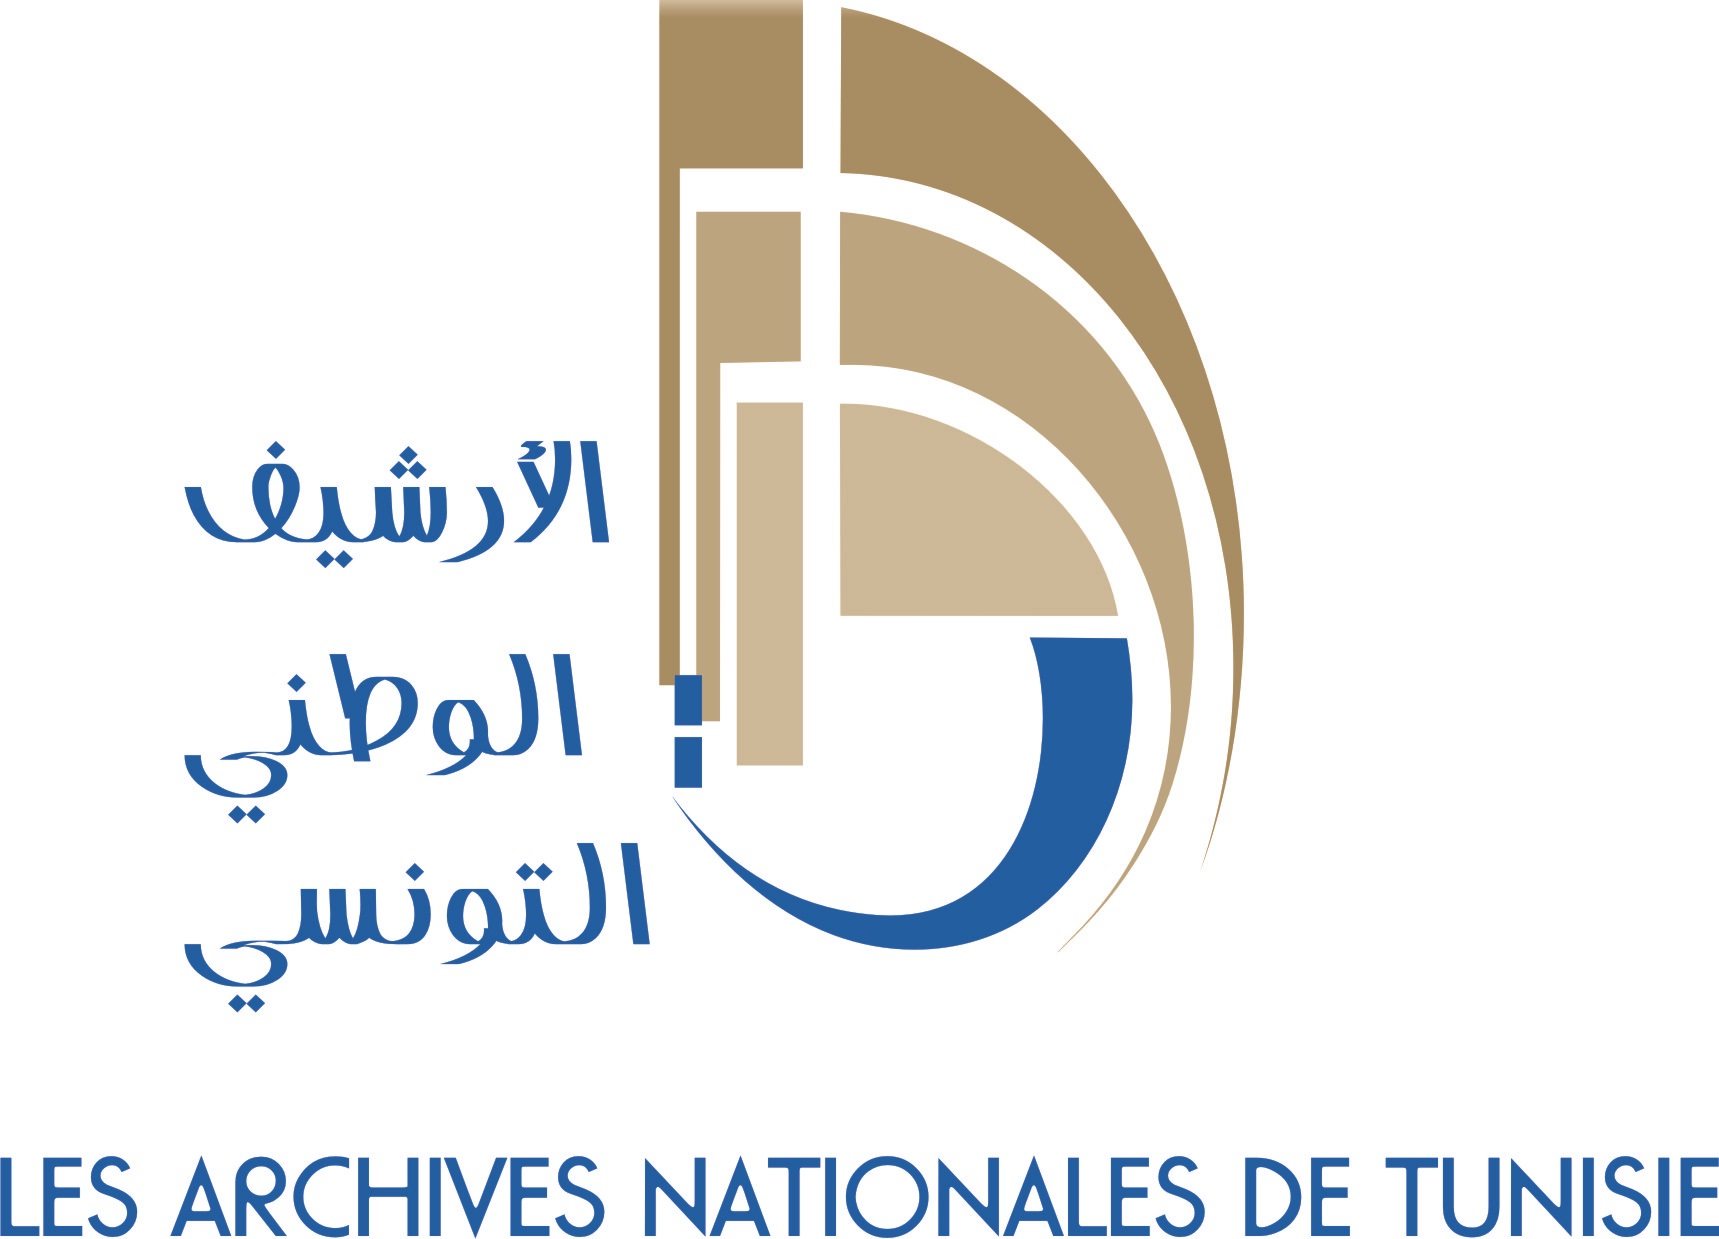 Les Archives Nationales de Tunisie